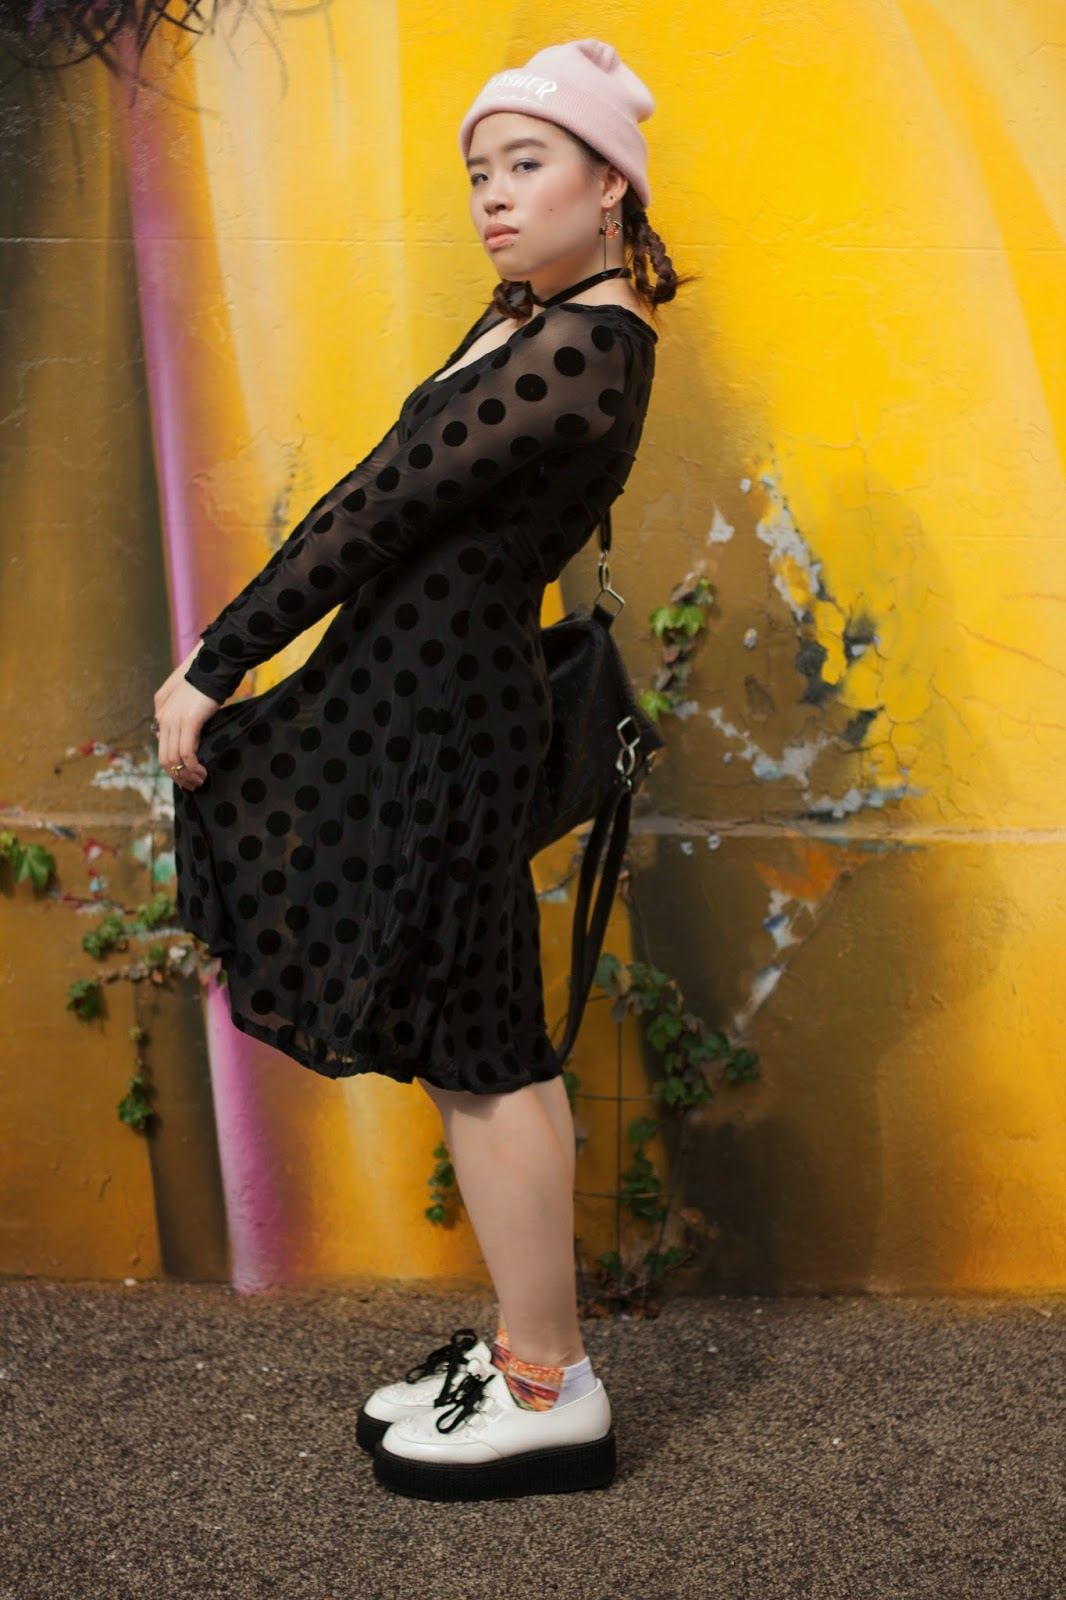 Rainie modelling polka dotted dress and creepers